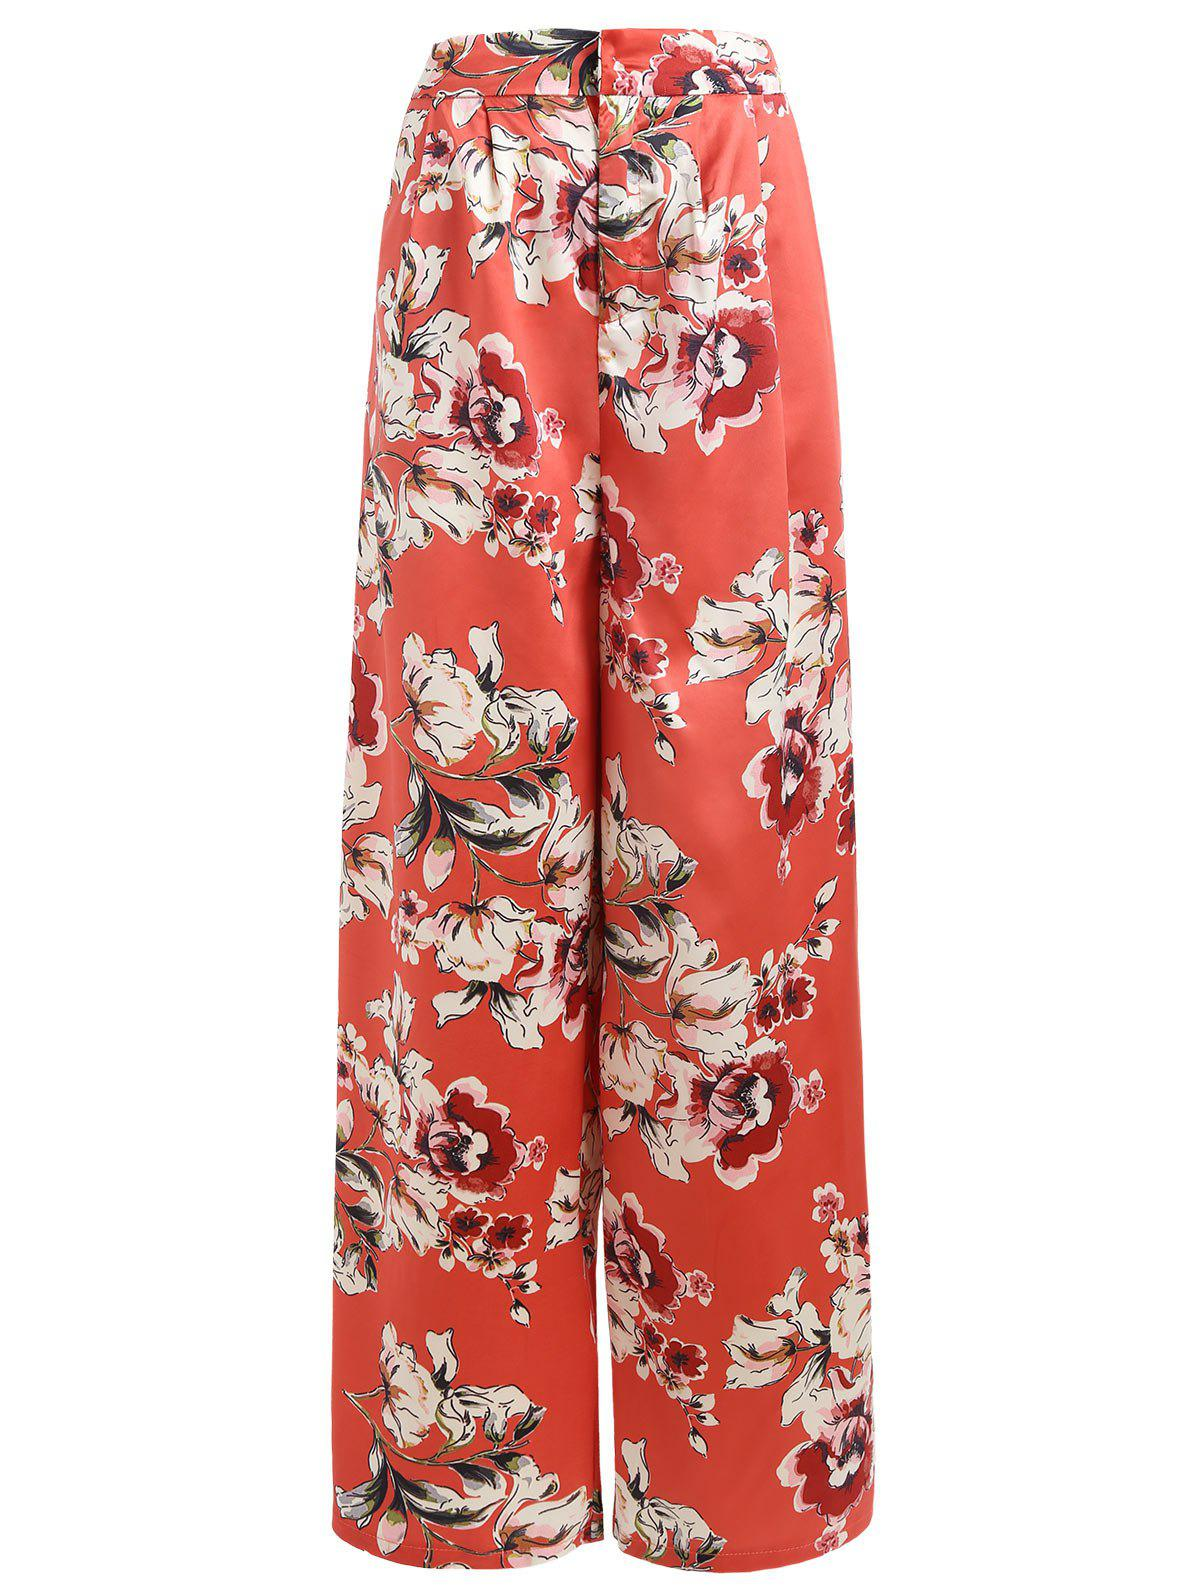 Unique Floral Print Satin Palazzo Pants